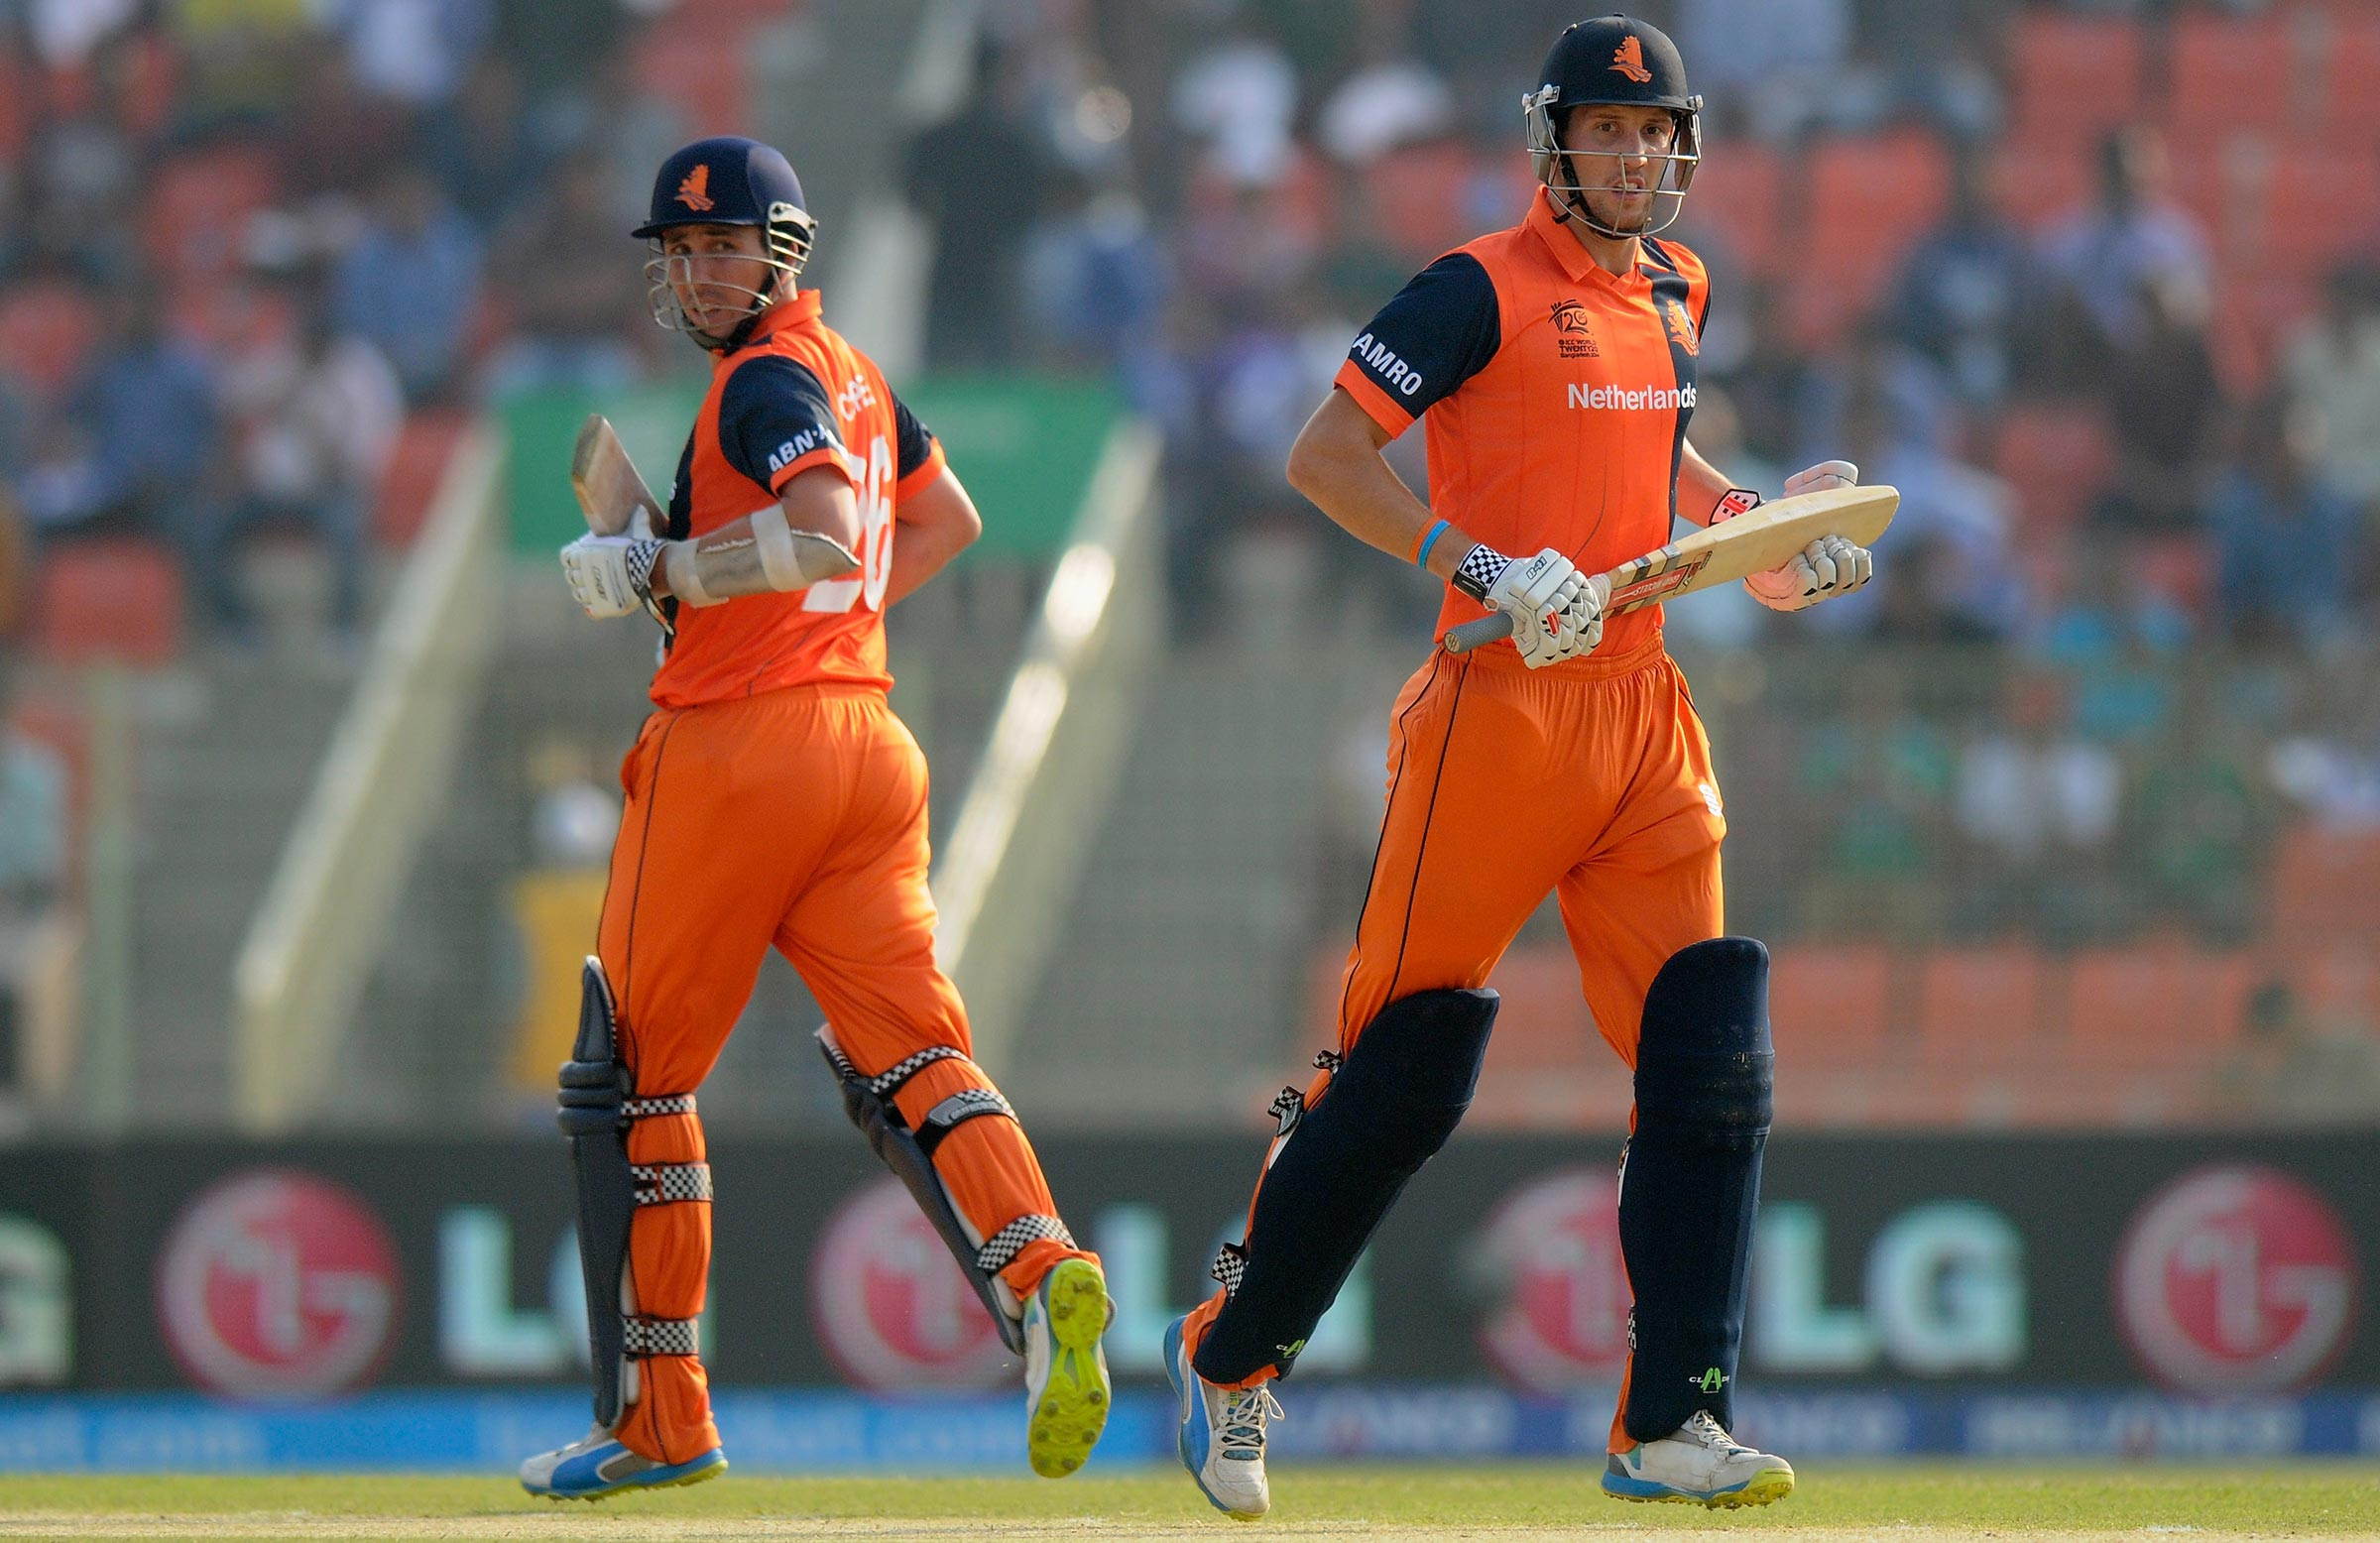 The Cooper brothers played together at two T20 World Cups // Getty